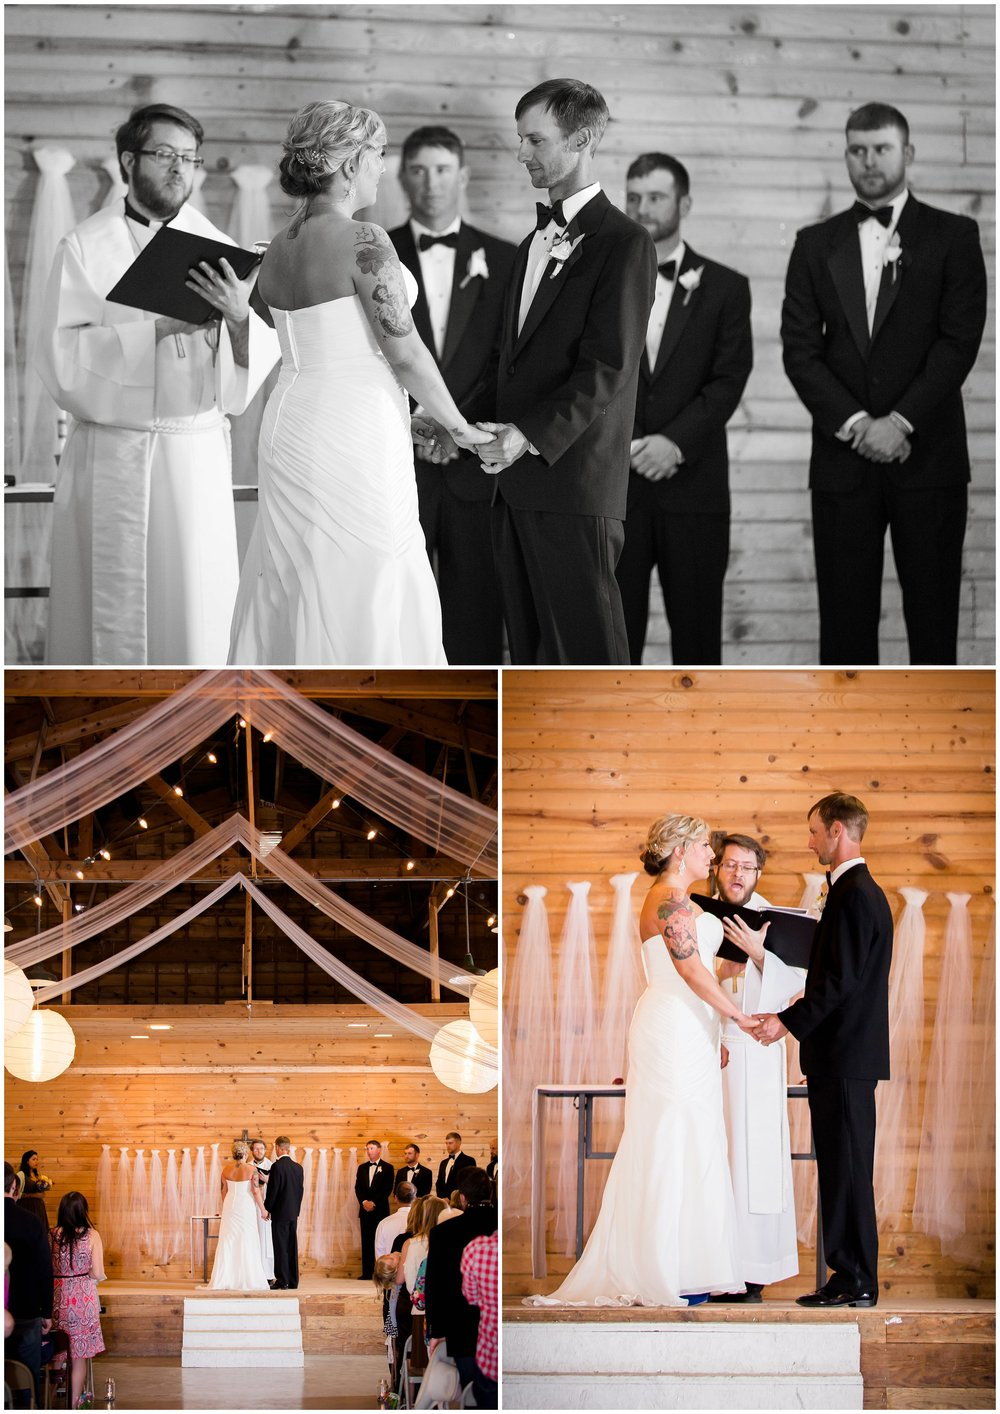 Star-barn-Idaho-Wedding-Ceremony-photography2